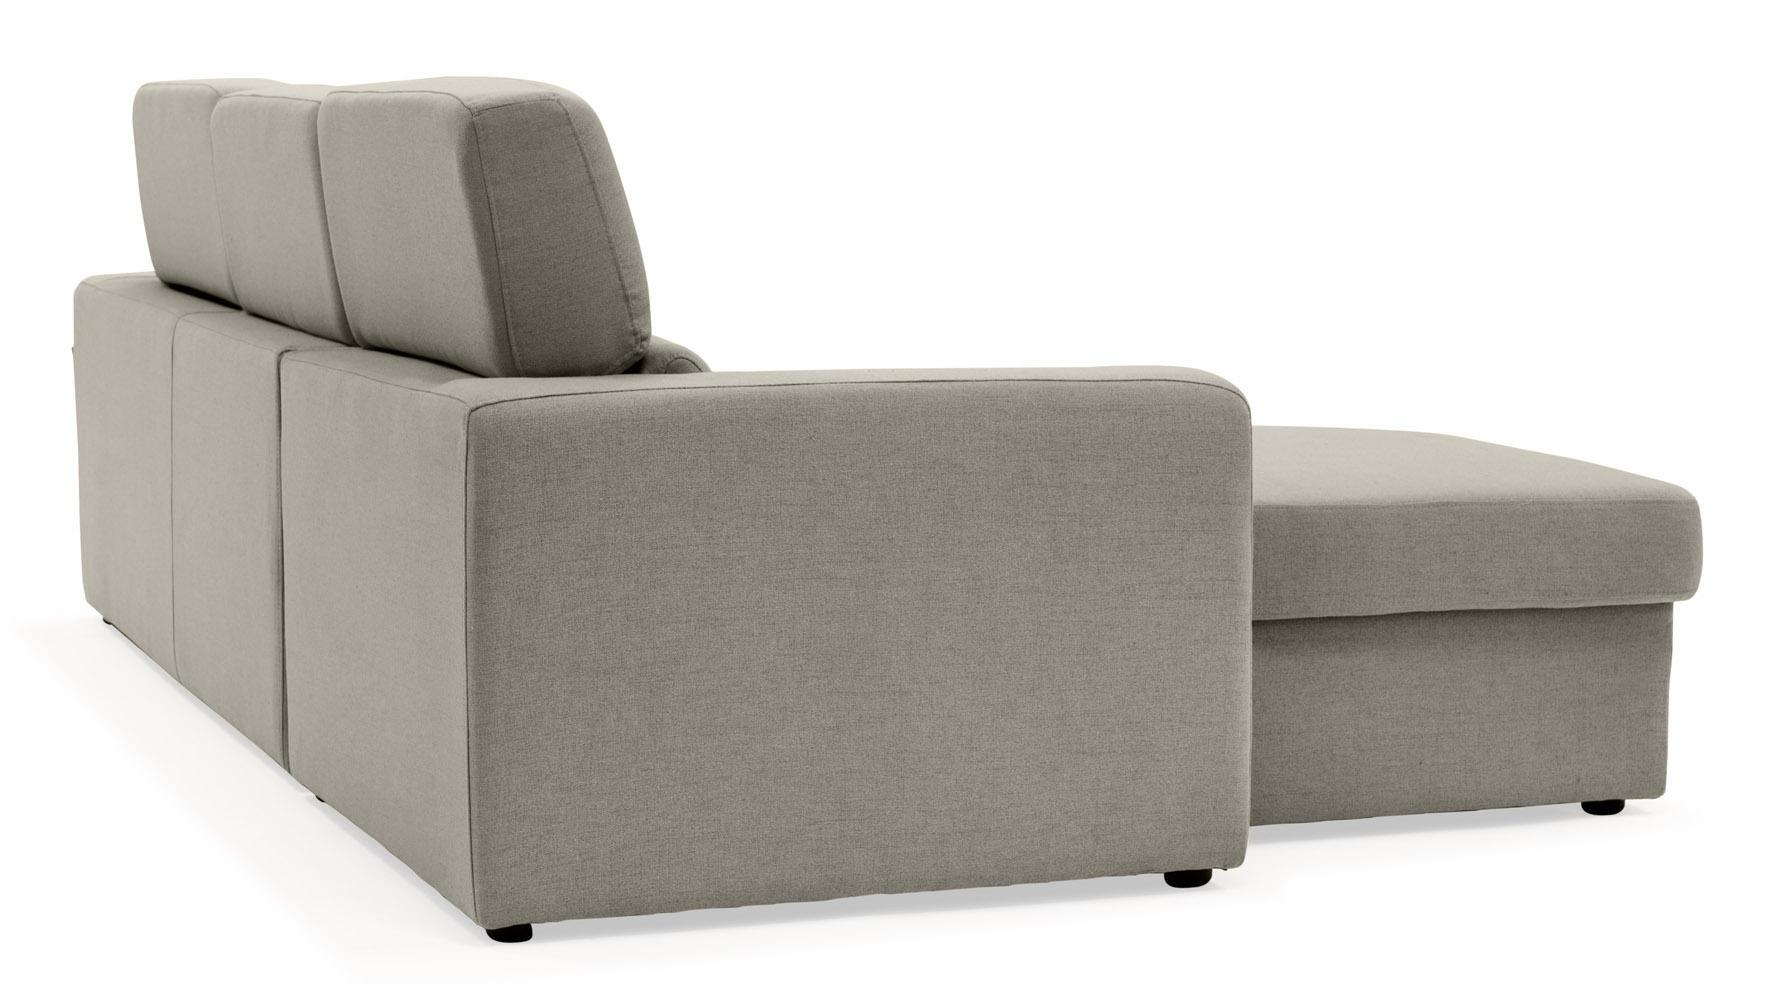 Gray Clubber Sleeper Sectional Sofa | Zuri Furniture In Sleeper Sectional Sofas (Image 7 of 20)